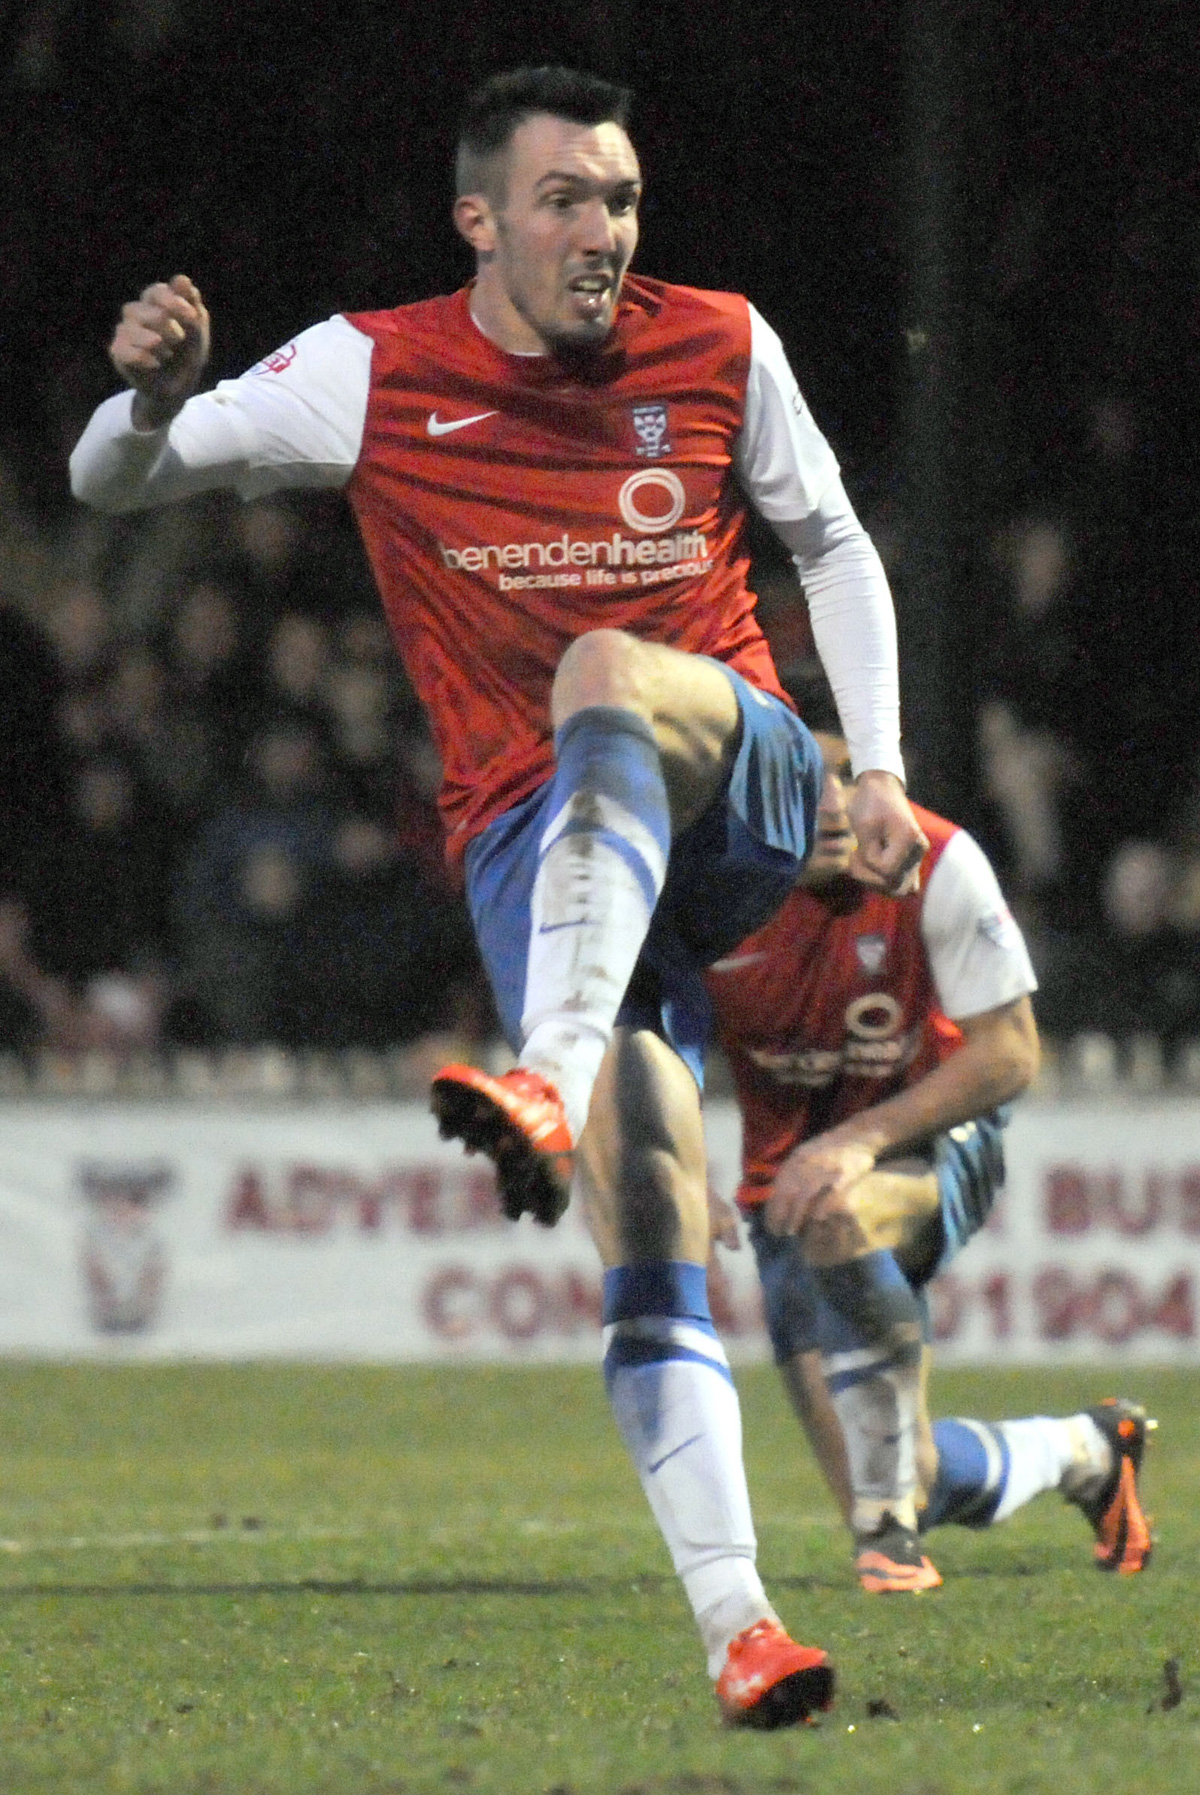 York City 3, Dagenham 1